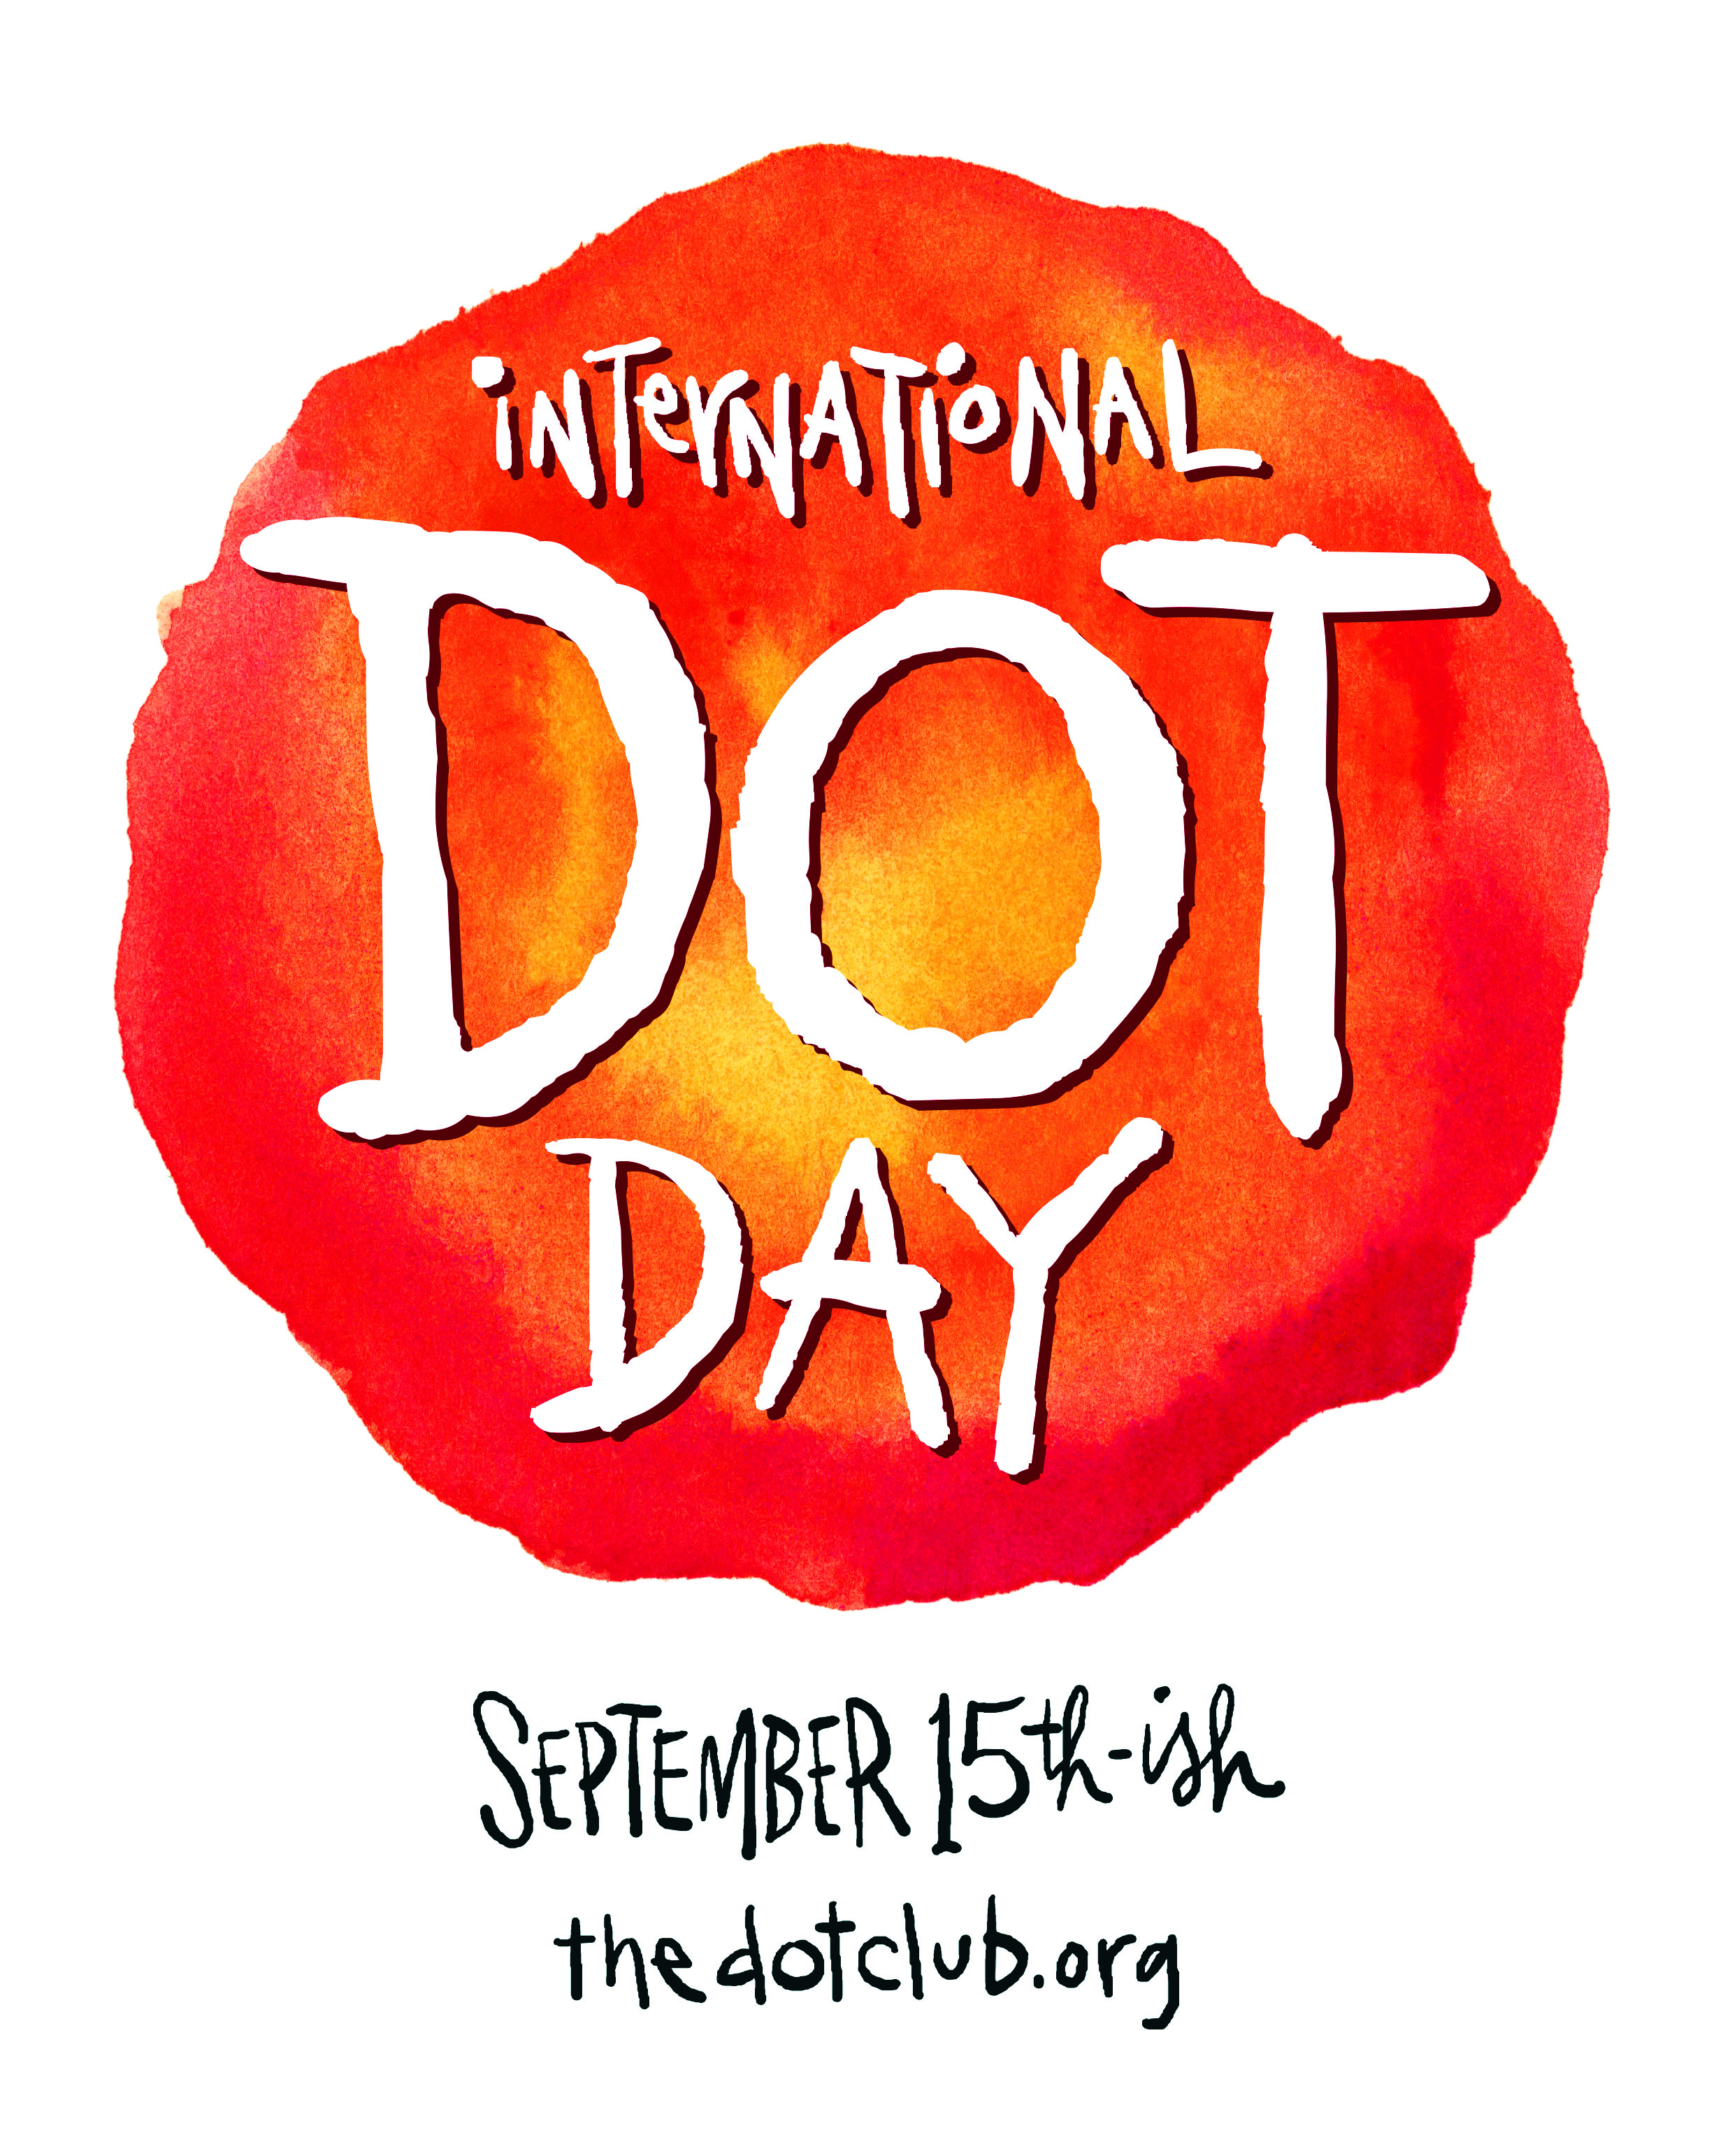 dot_day_logo_300dpi_cmyk_v02.jpg